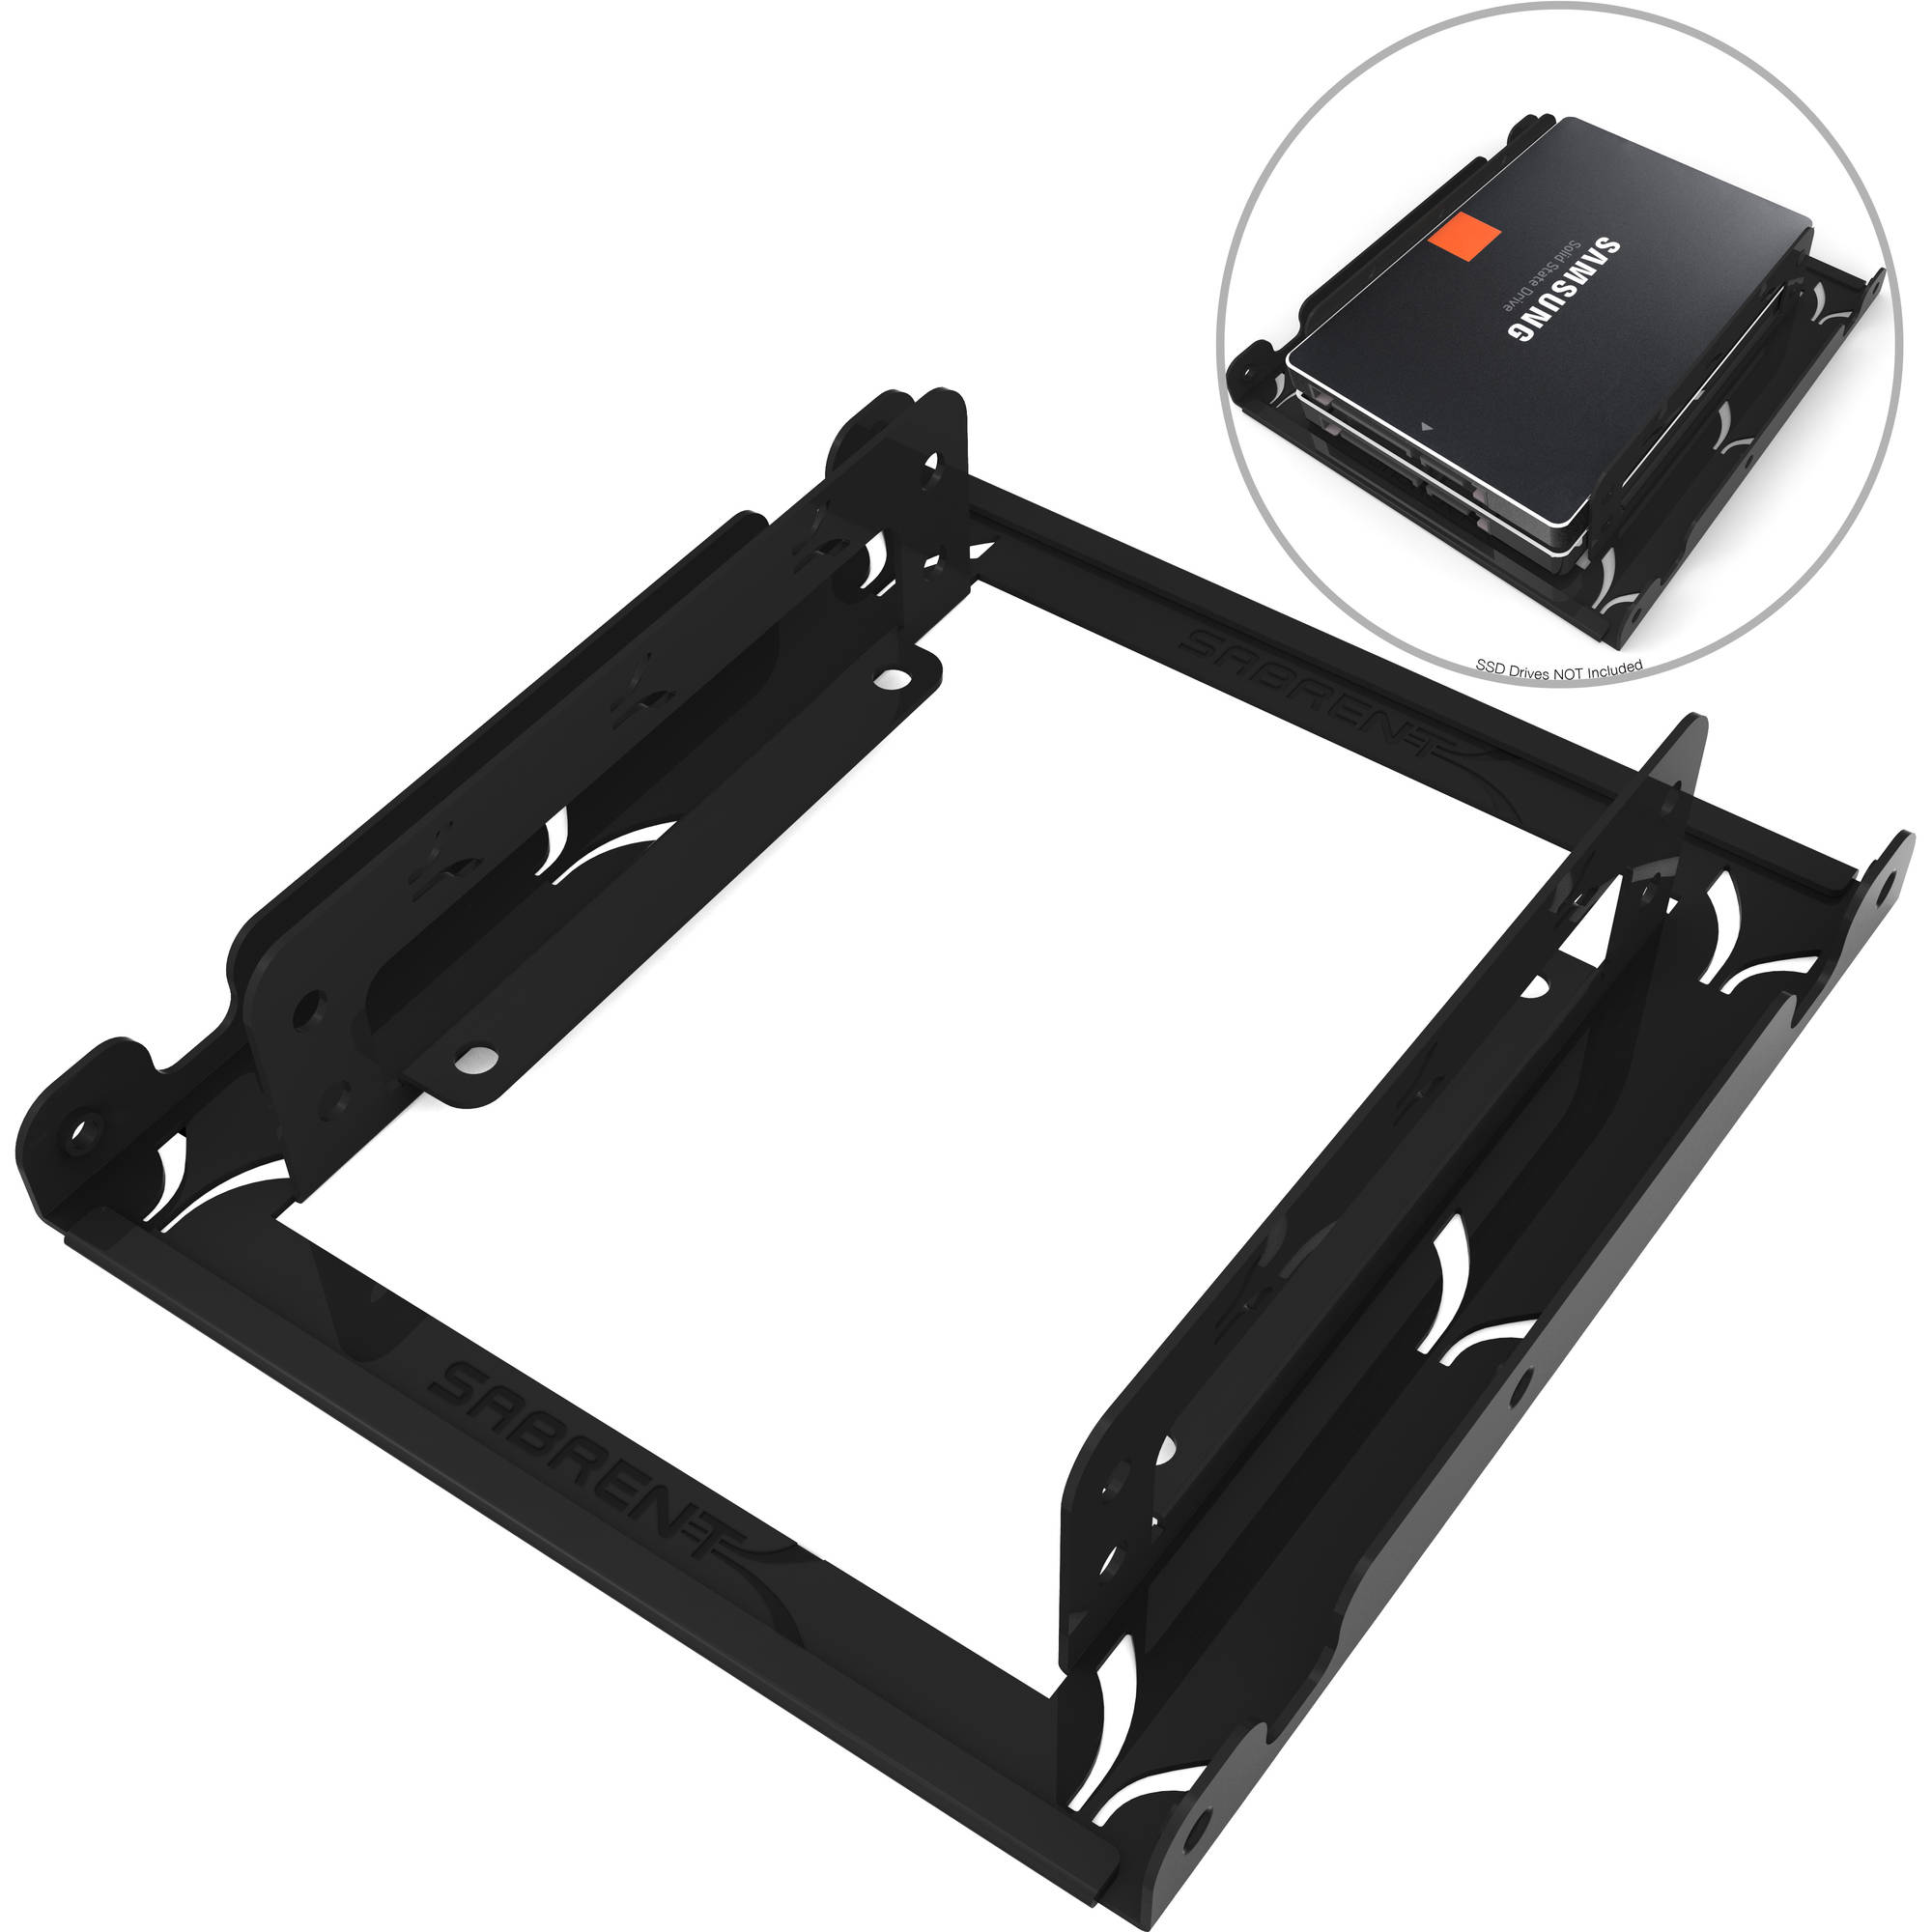 "Sabrent 2.5"" to 3.5"" Internal Hard Disk Drive Mounting Bracket Kit, BK-HDDH"